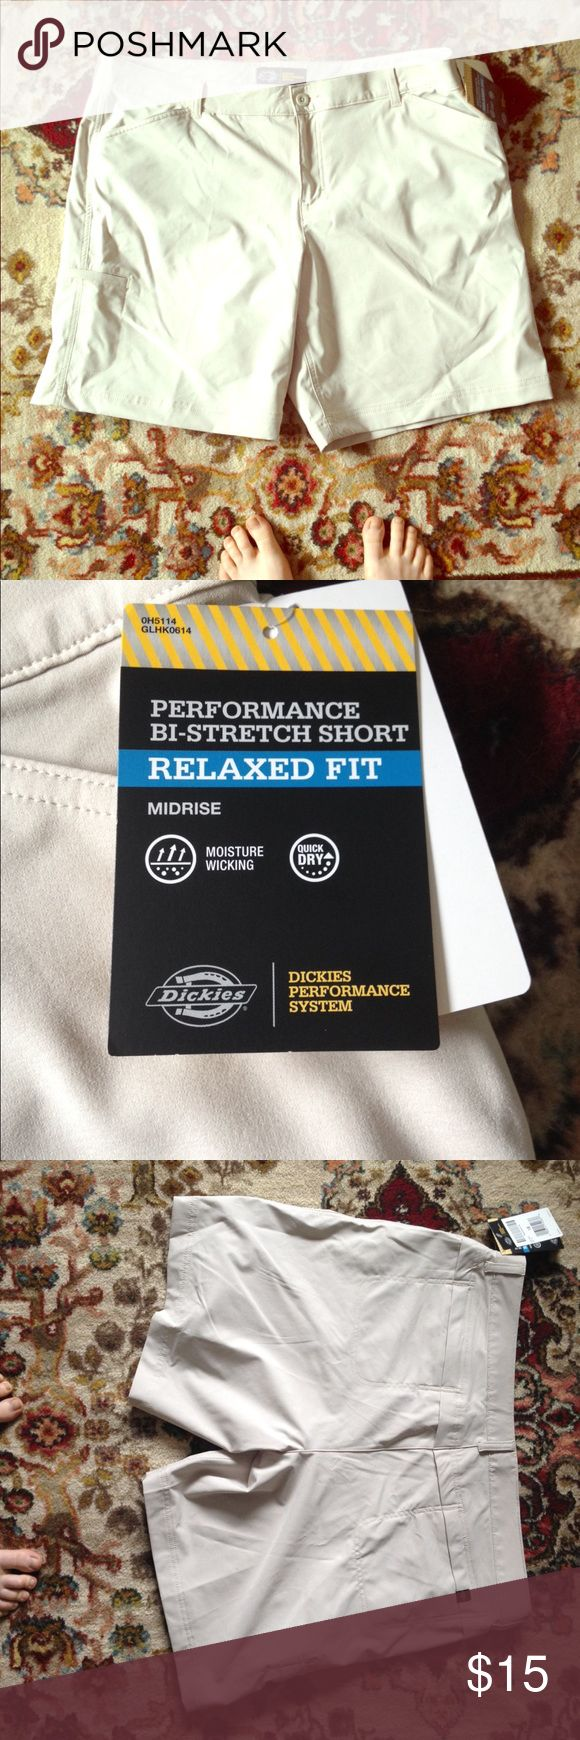 NWT Dickies Shorts New with tags Dickies Performance System Shorts. Great for outdoor activities. Dickies Shorts